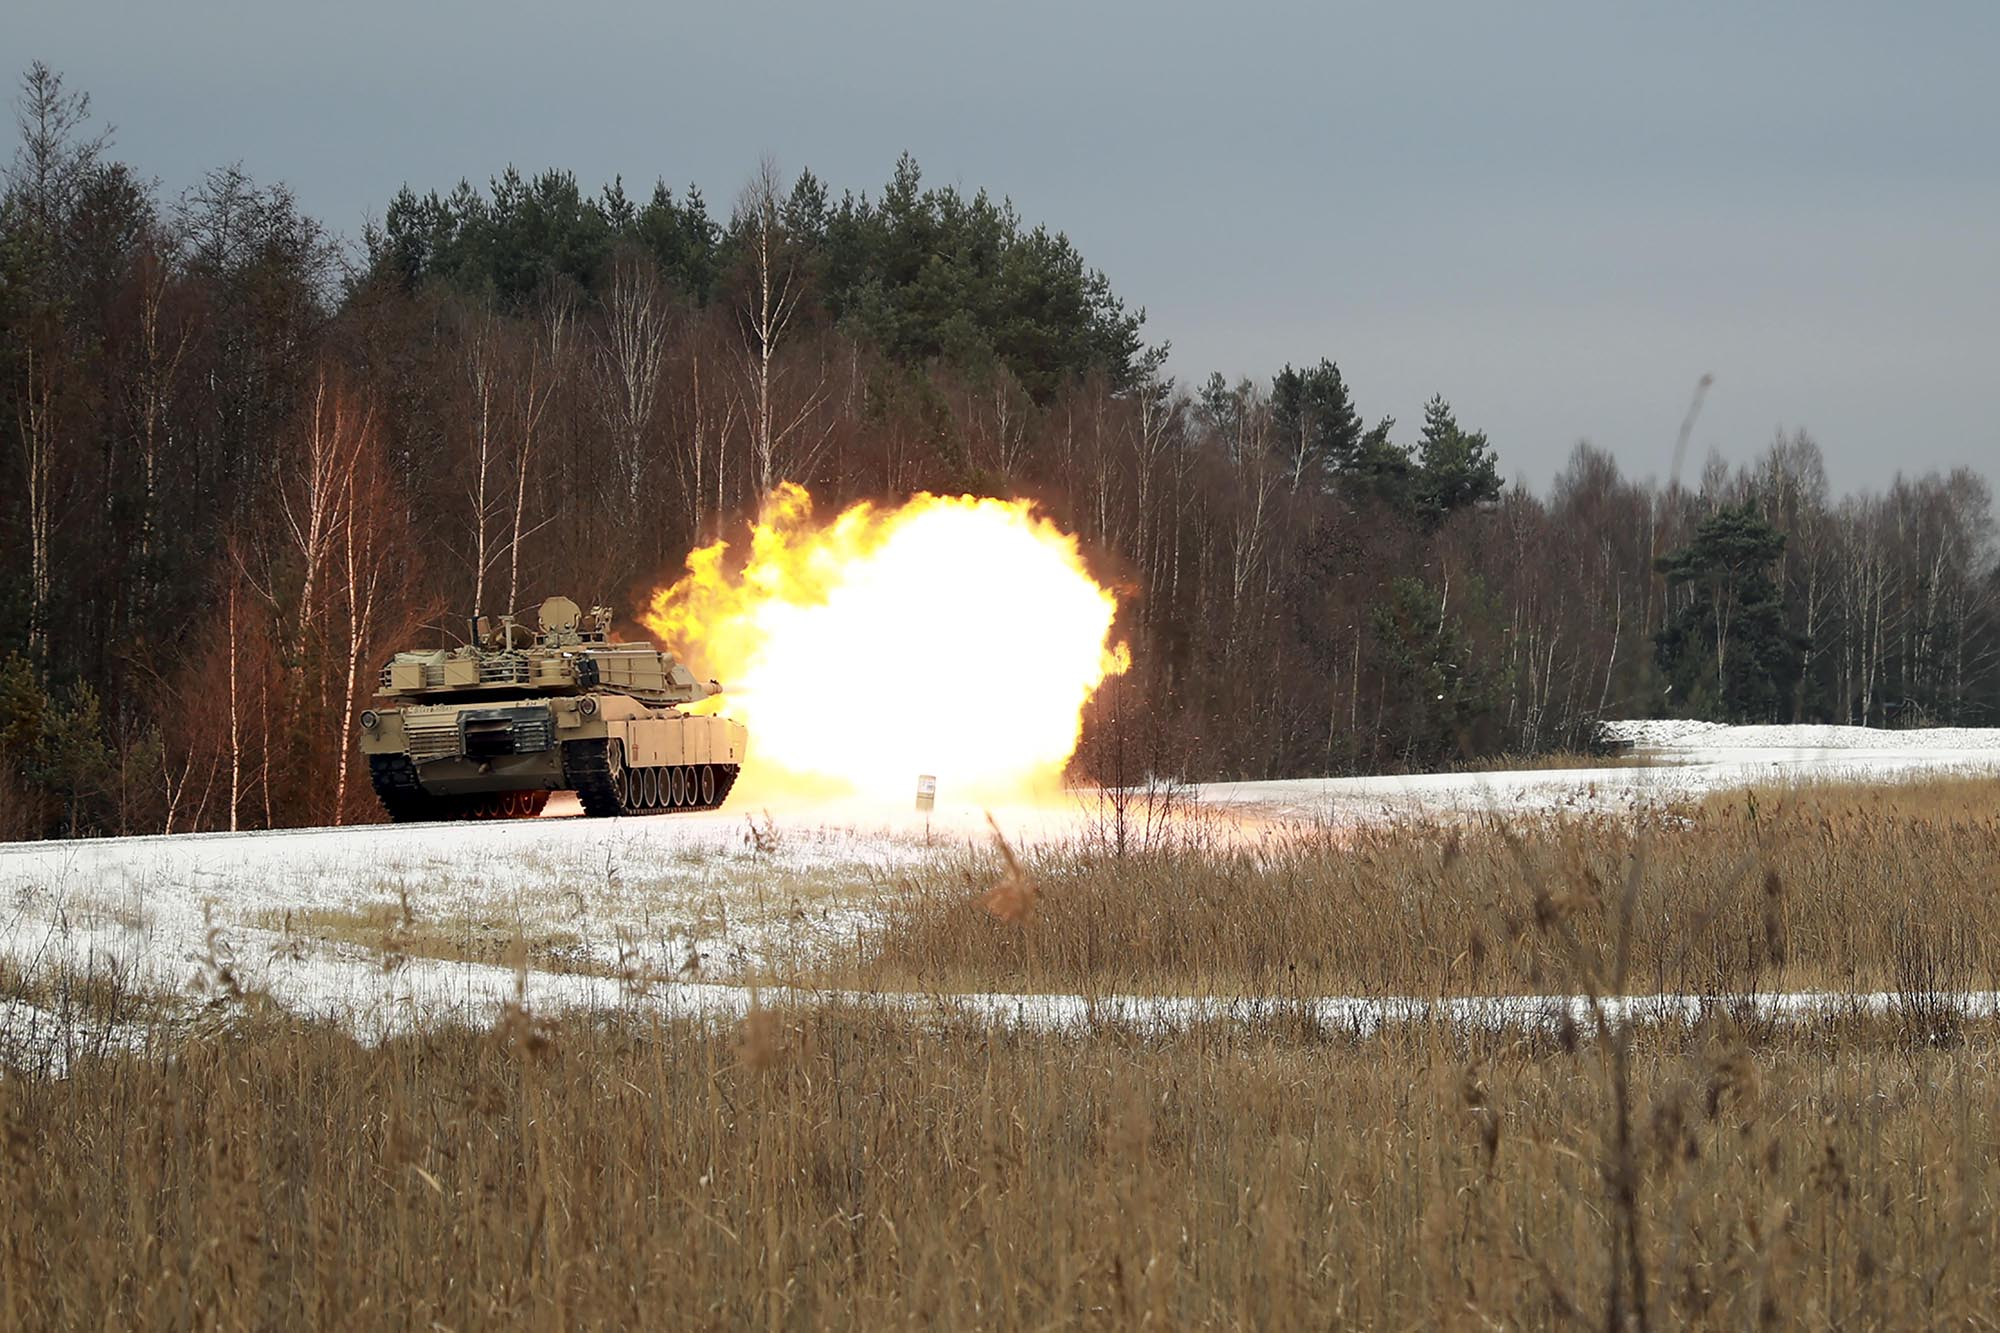 An M1 Abrams Main Battle Tank assigned to the 2nd Battalion, 5th Cavalry Regiment, 1st Armored Brigade Combat Team, 1st Cavalry Division, fires its main gun at Grafenwoehr Training Area, Germany, Dec. 2, 2020. (Army)